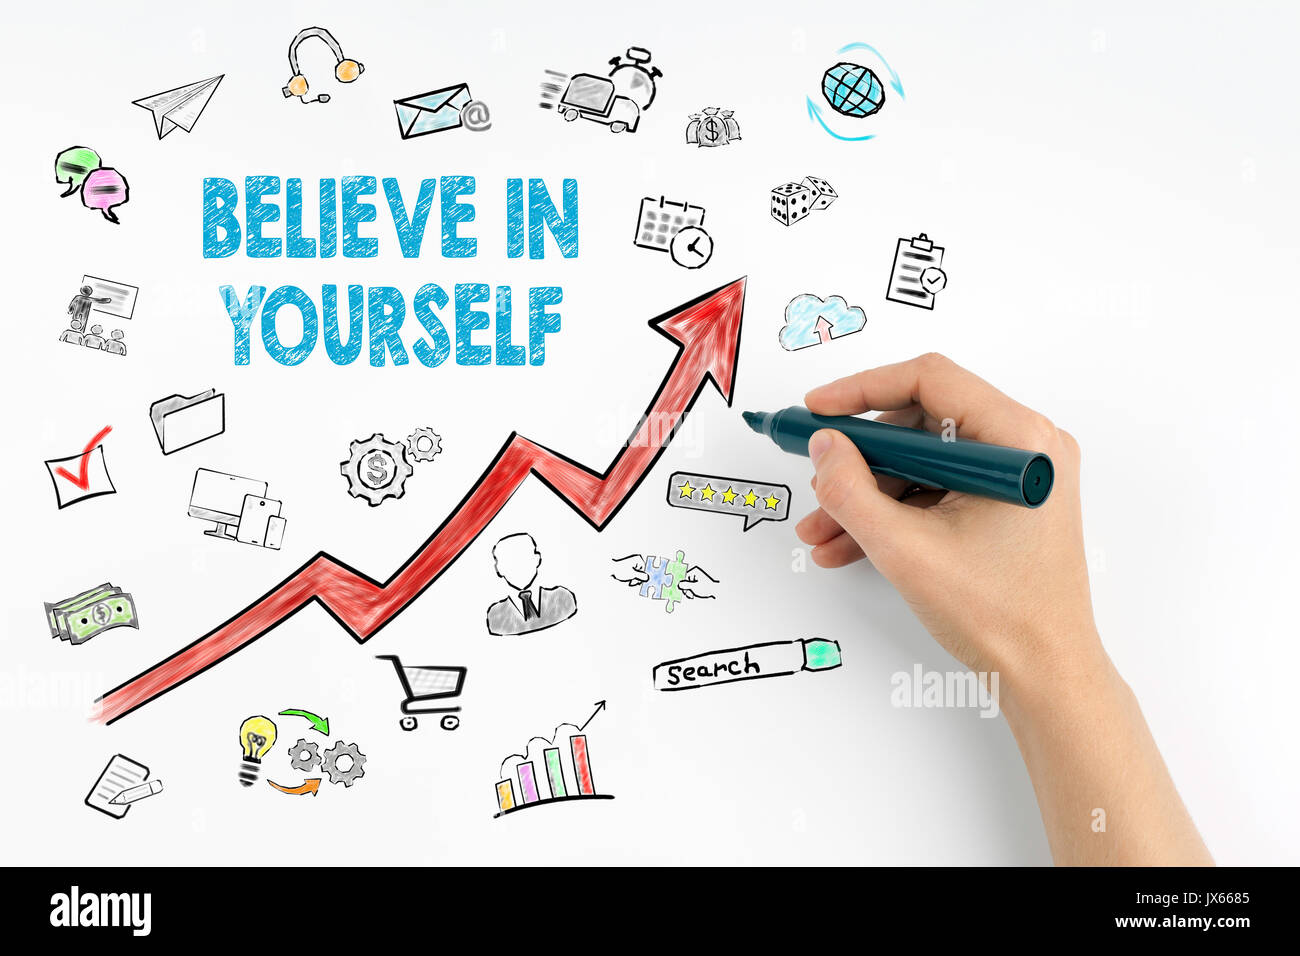 Believe In Yourself Concept. Hand with marker writing. - Stock Image